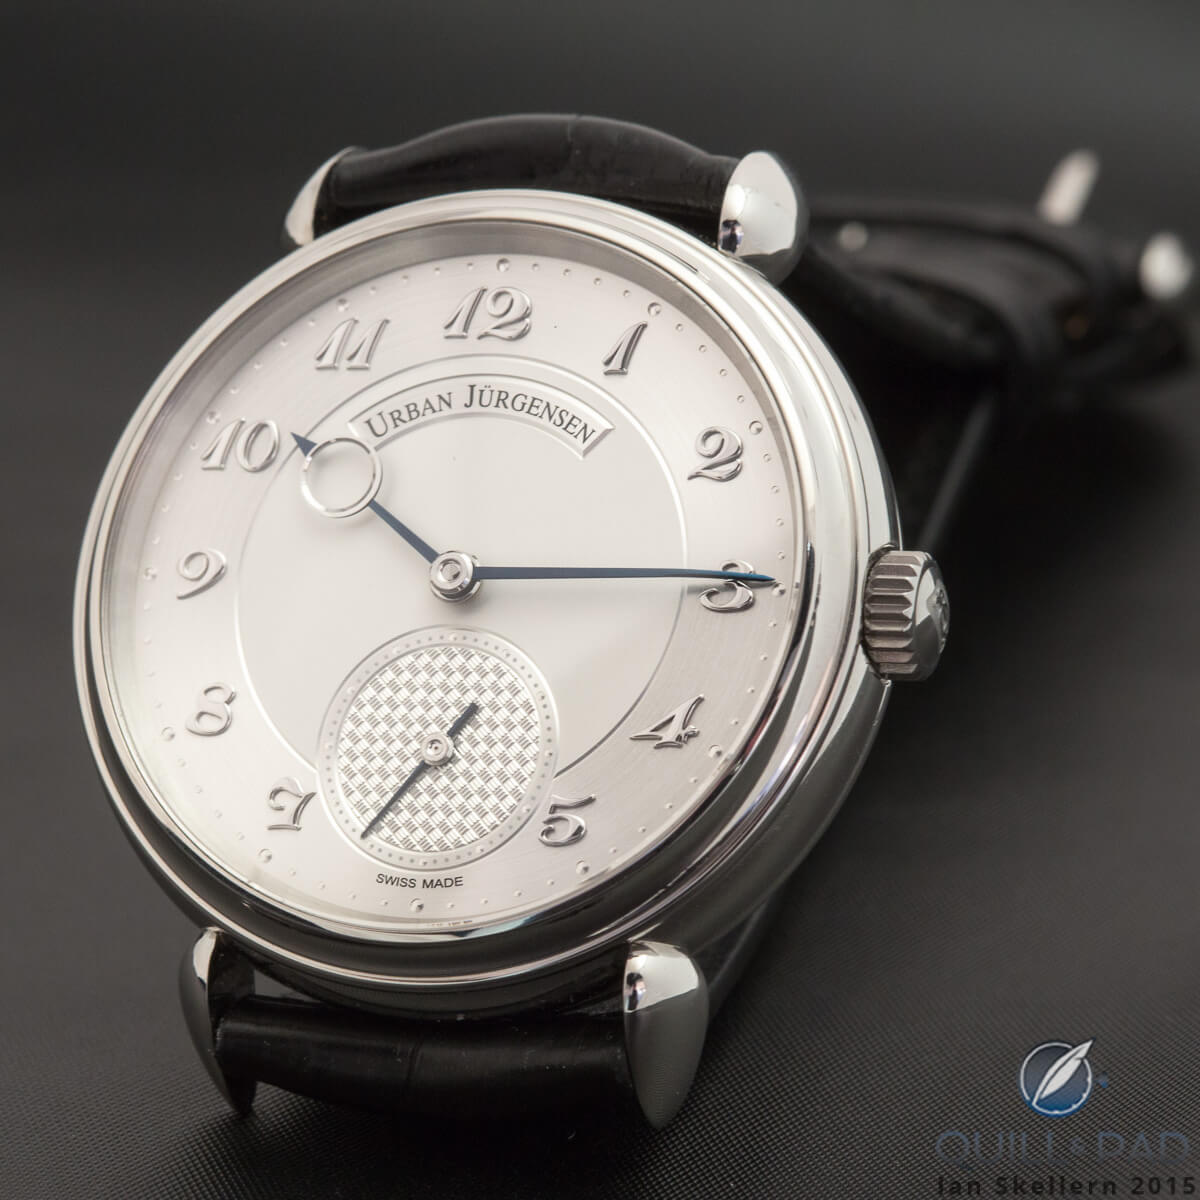 Urban Jürgensen Reference 1140L in solid platinum